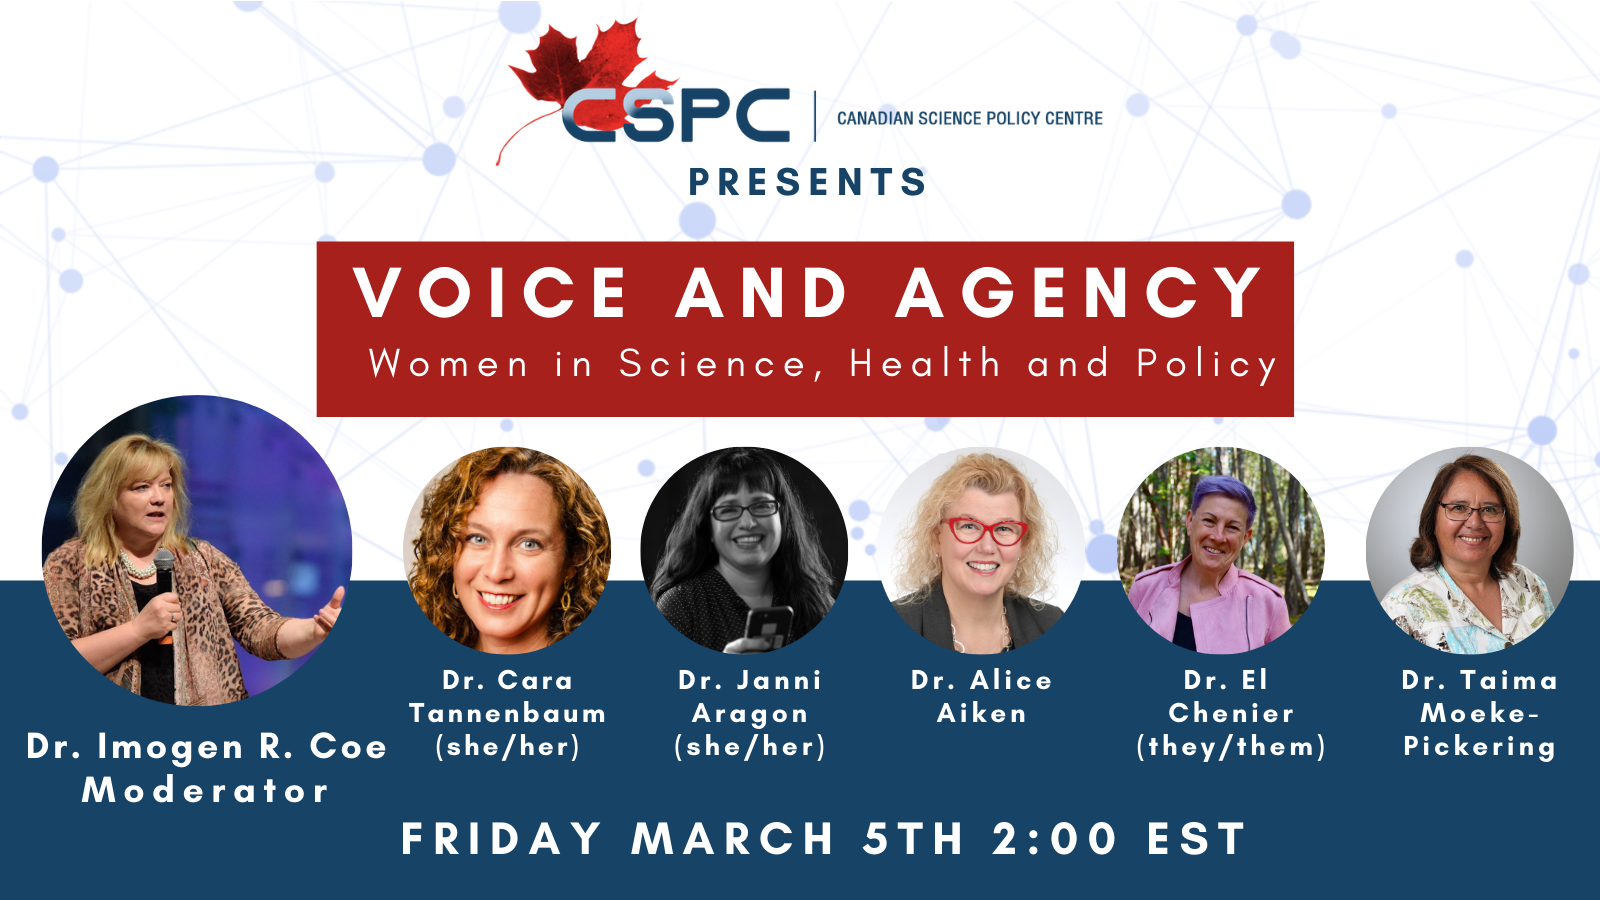 A banner for the event : Voice and Agency, Women in Science, Health and Policy with the headshots of each speaker